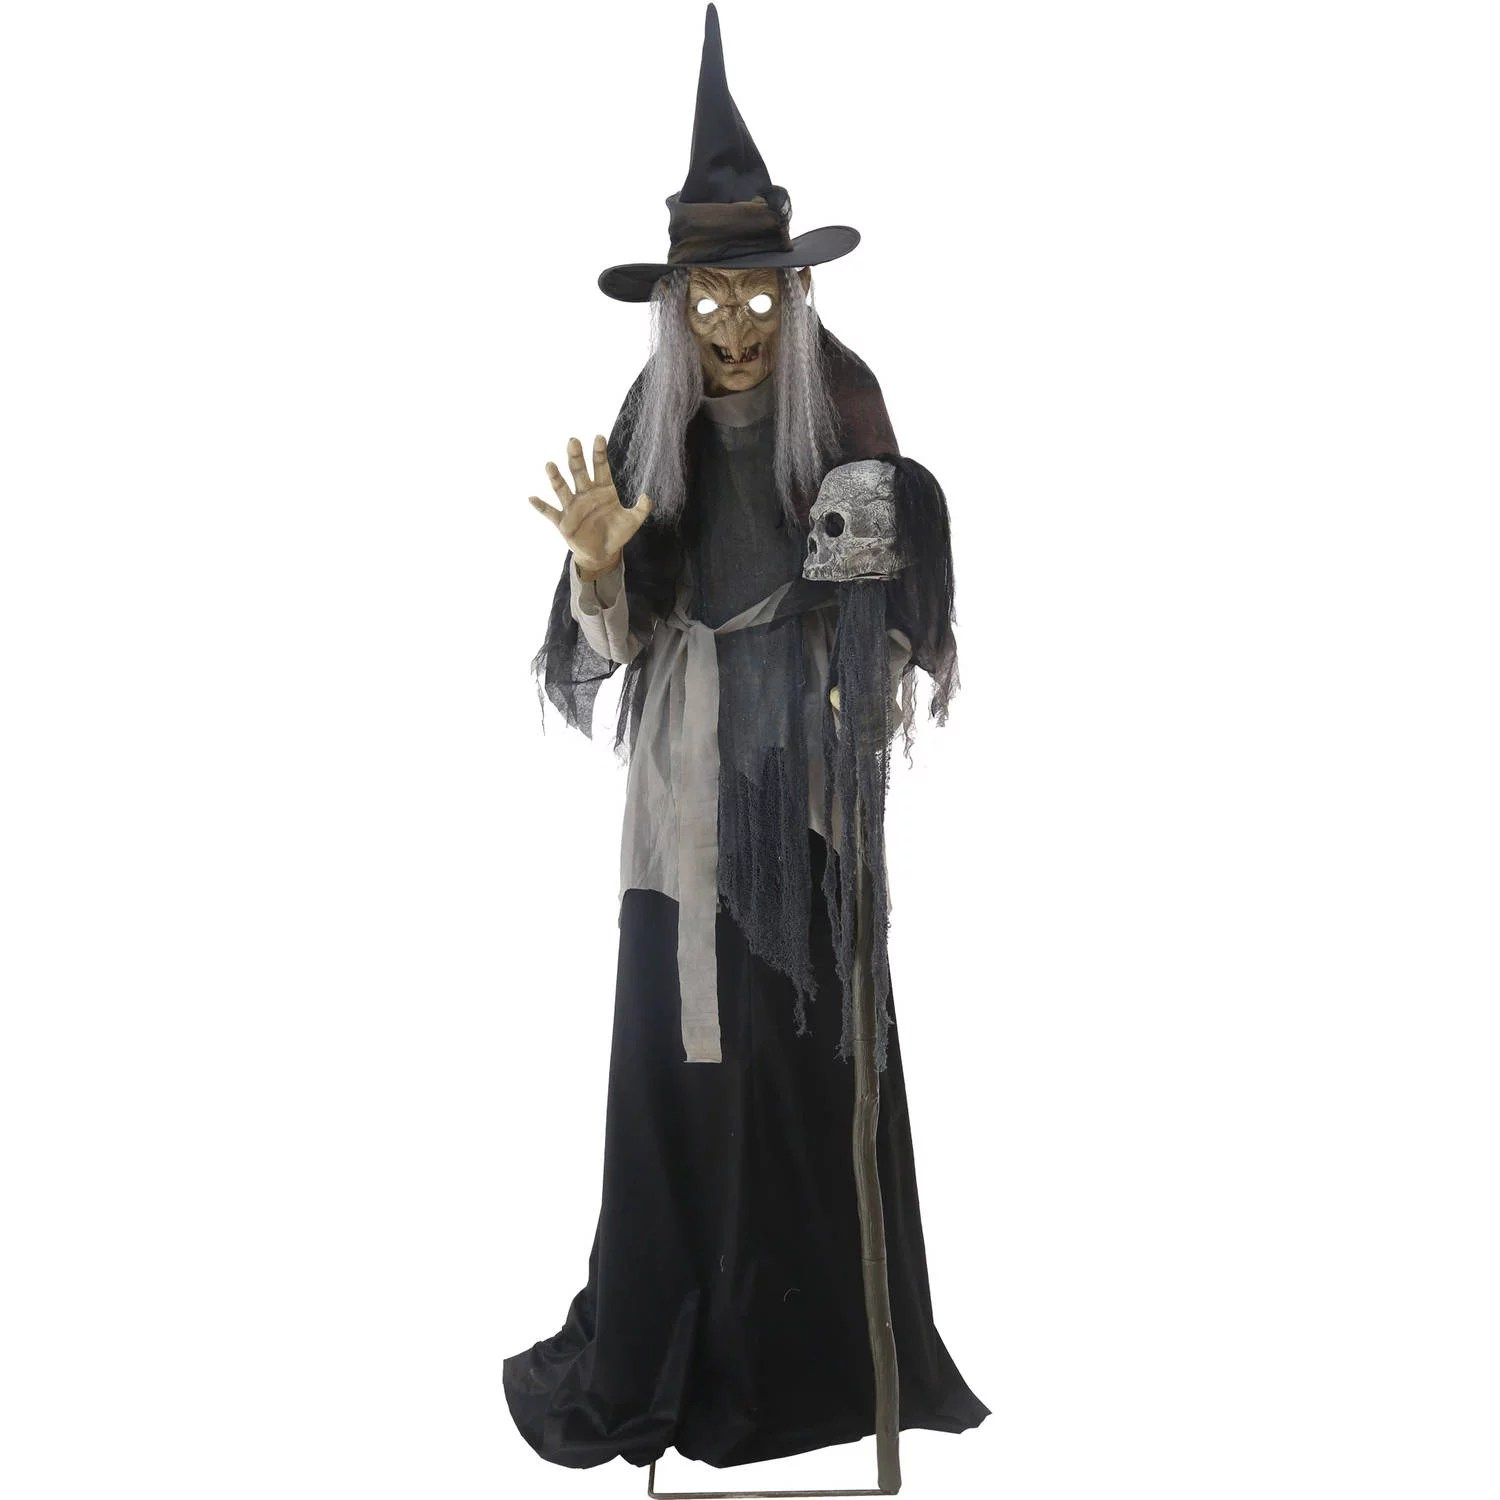 We may earn commission on some of the items you choose to buy. Lunging Haggard Witch Animated Halloween Decoration - Walmart.com - Walmart.com